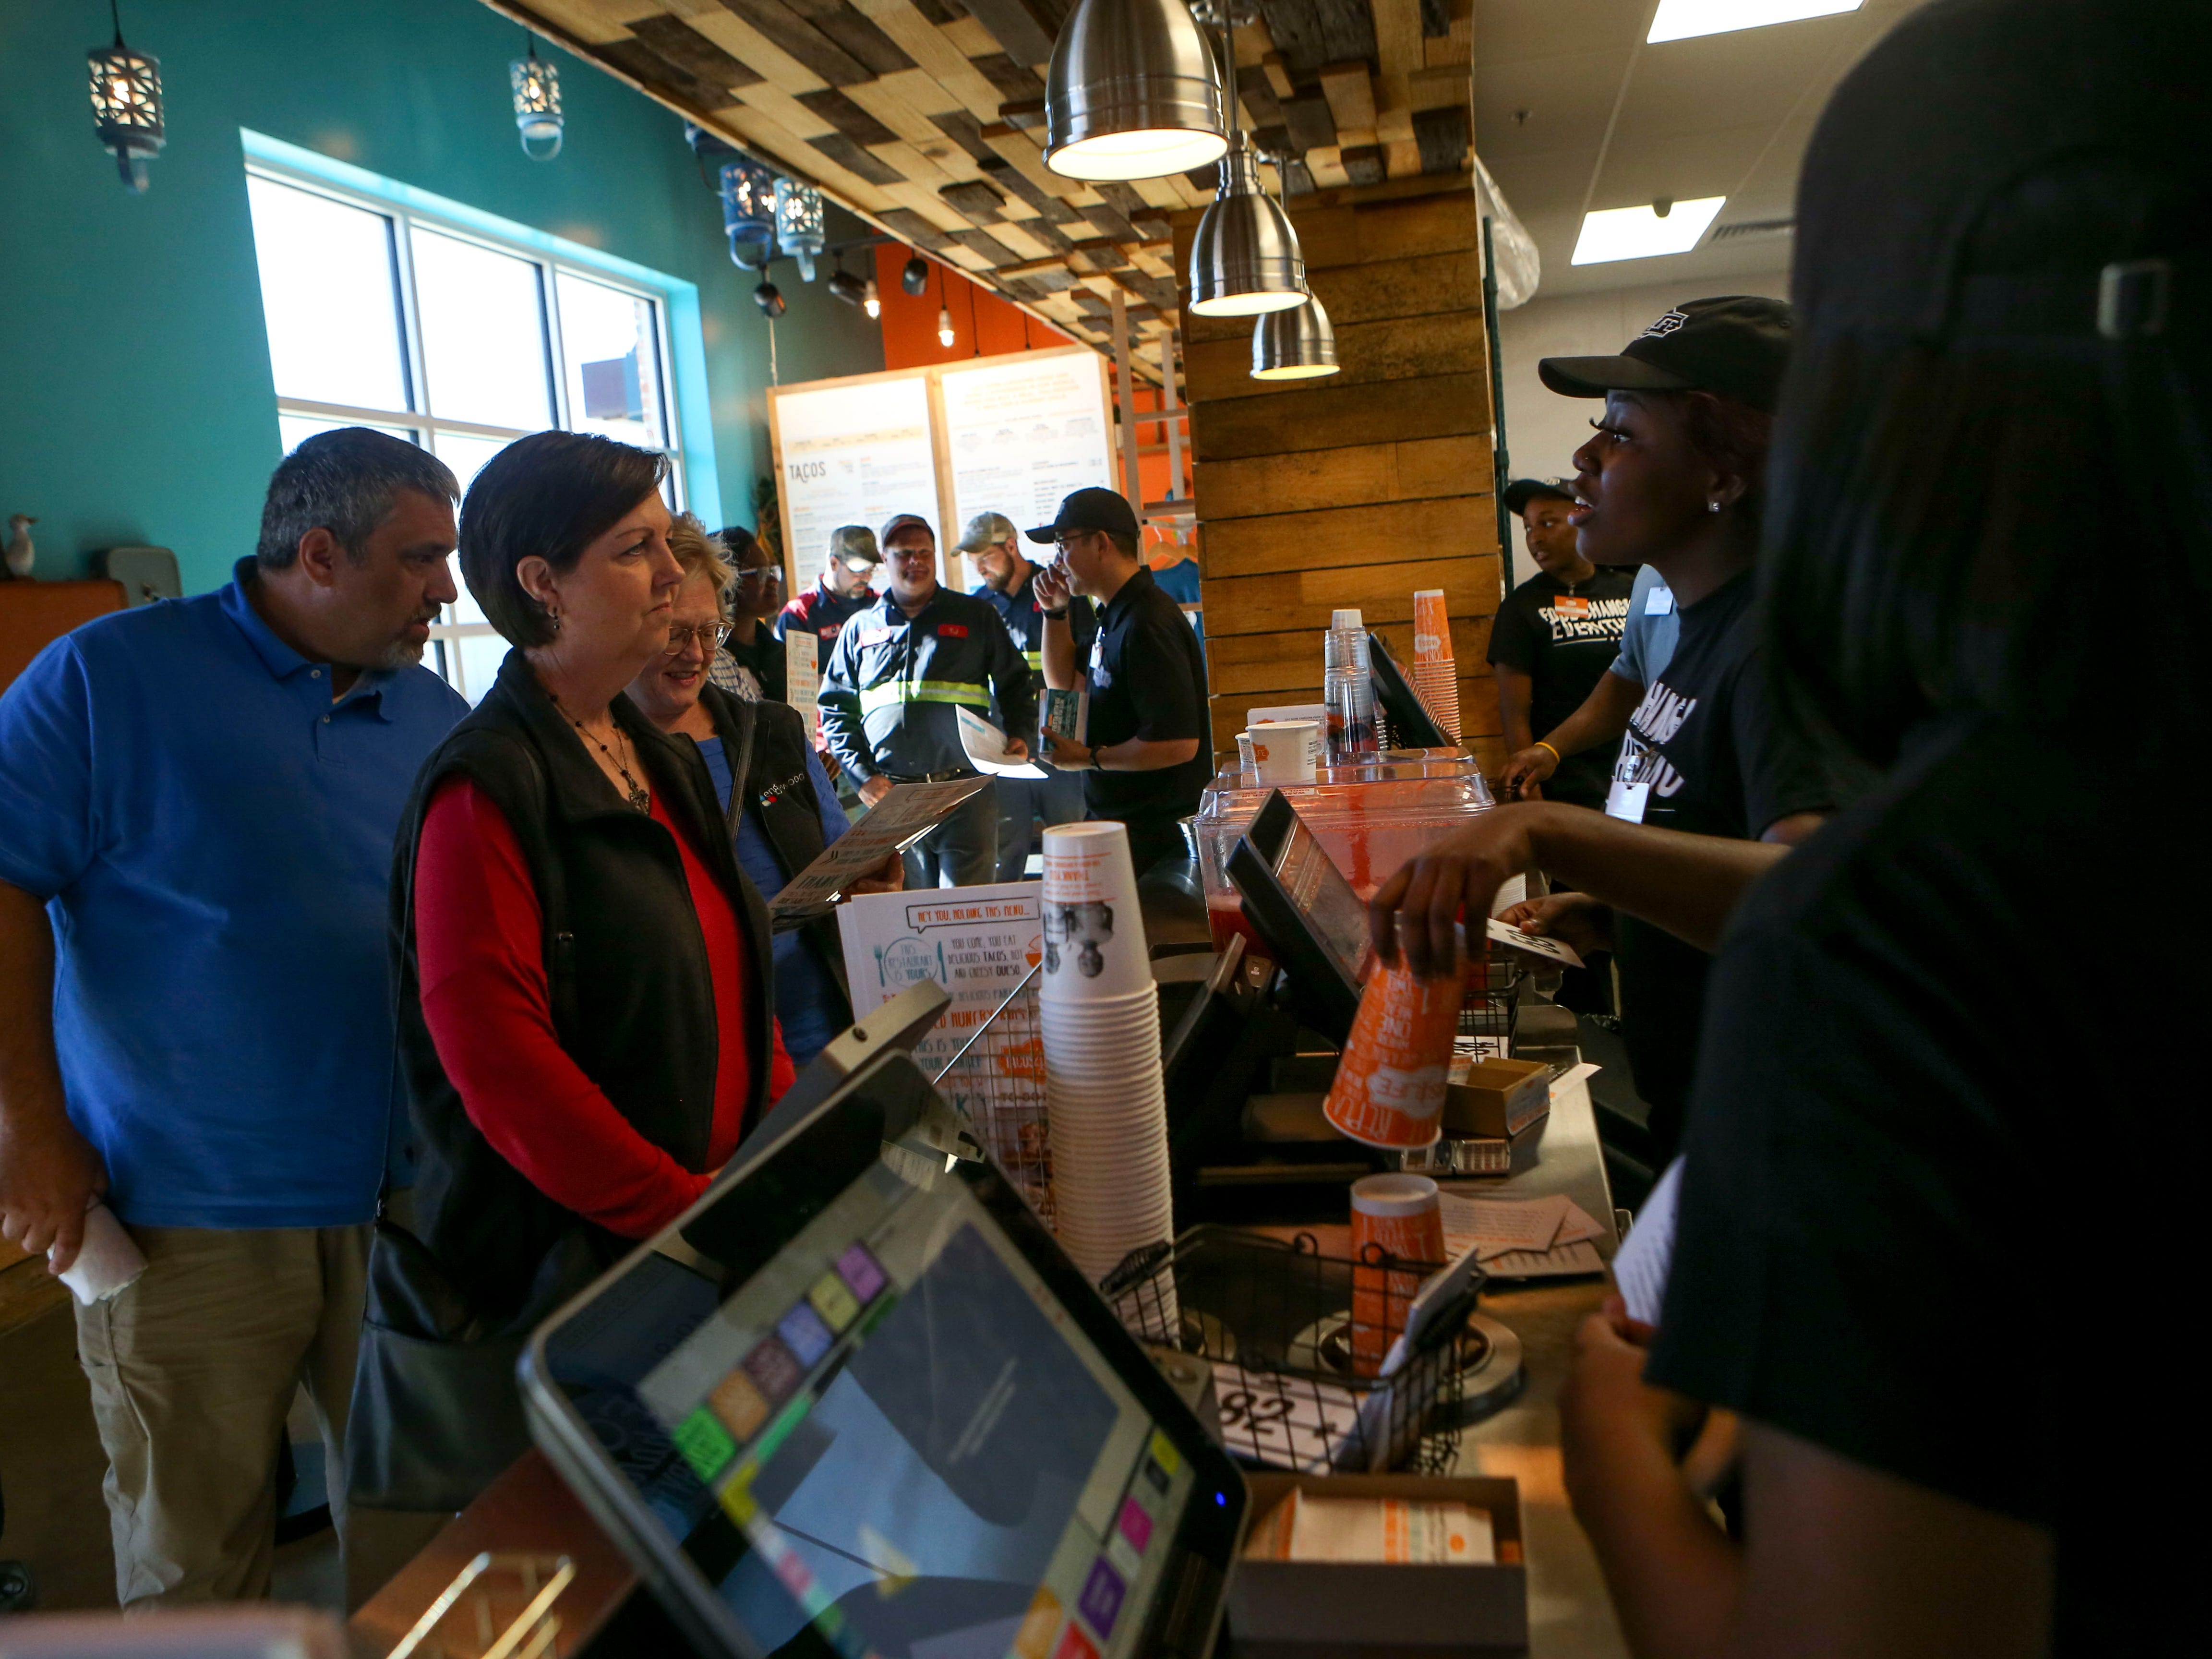 Cashiers take orders from patrons during the soft opening at Tacos 4 Life, a new restaurant in Jackson, Tenn., on Monday, Oct. 29, 2018.